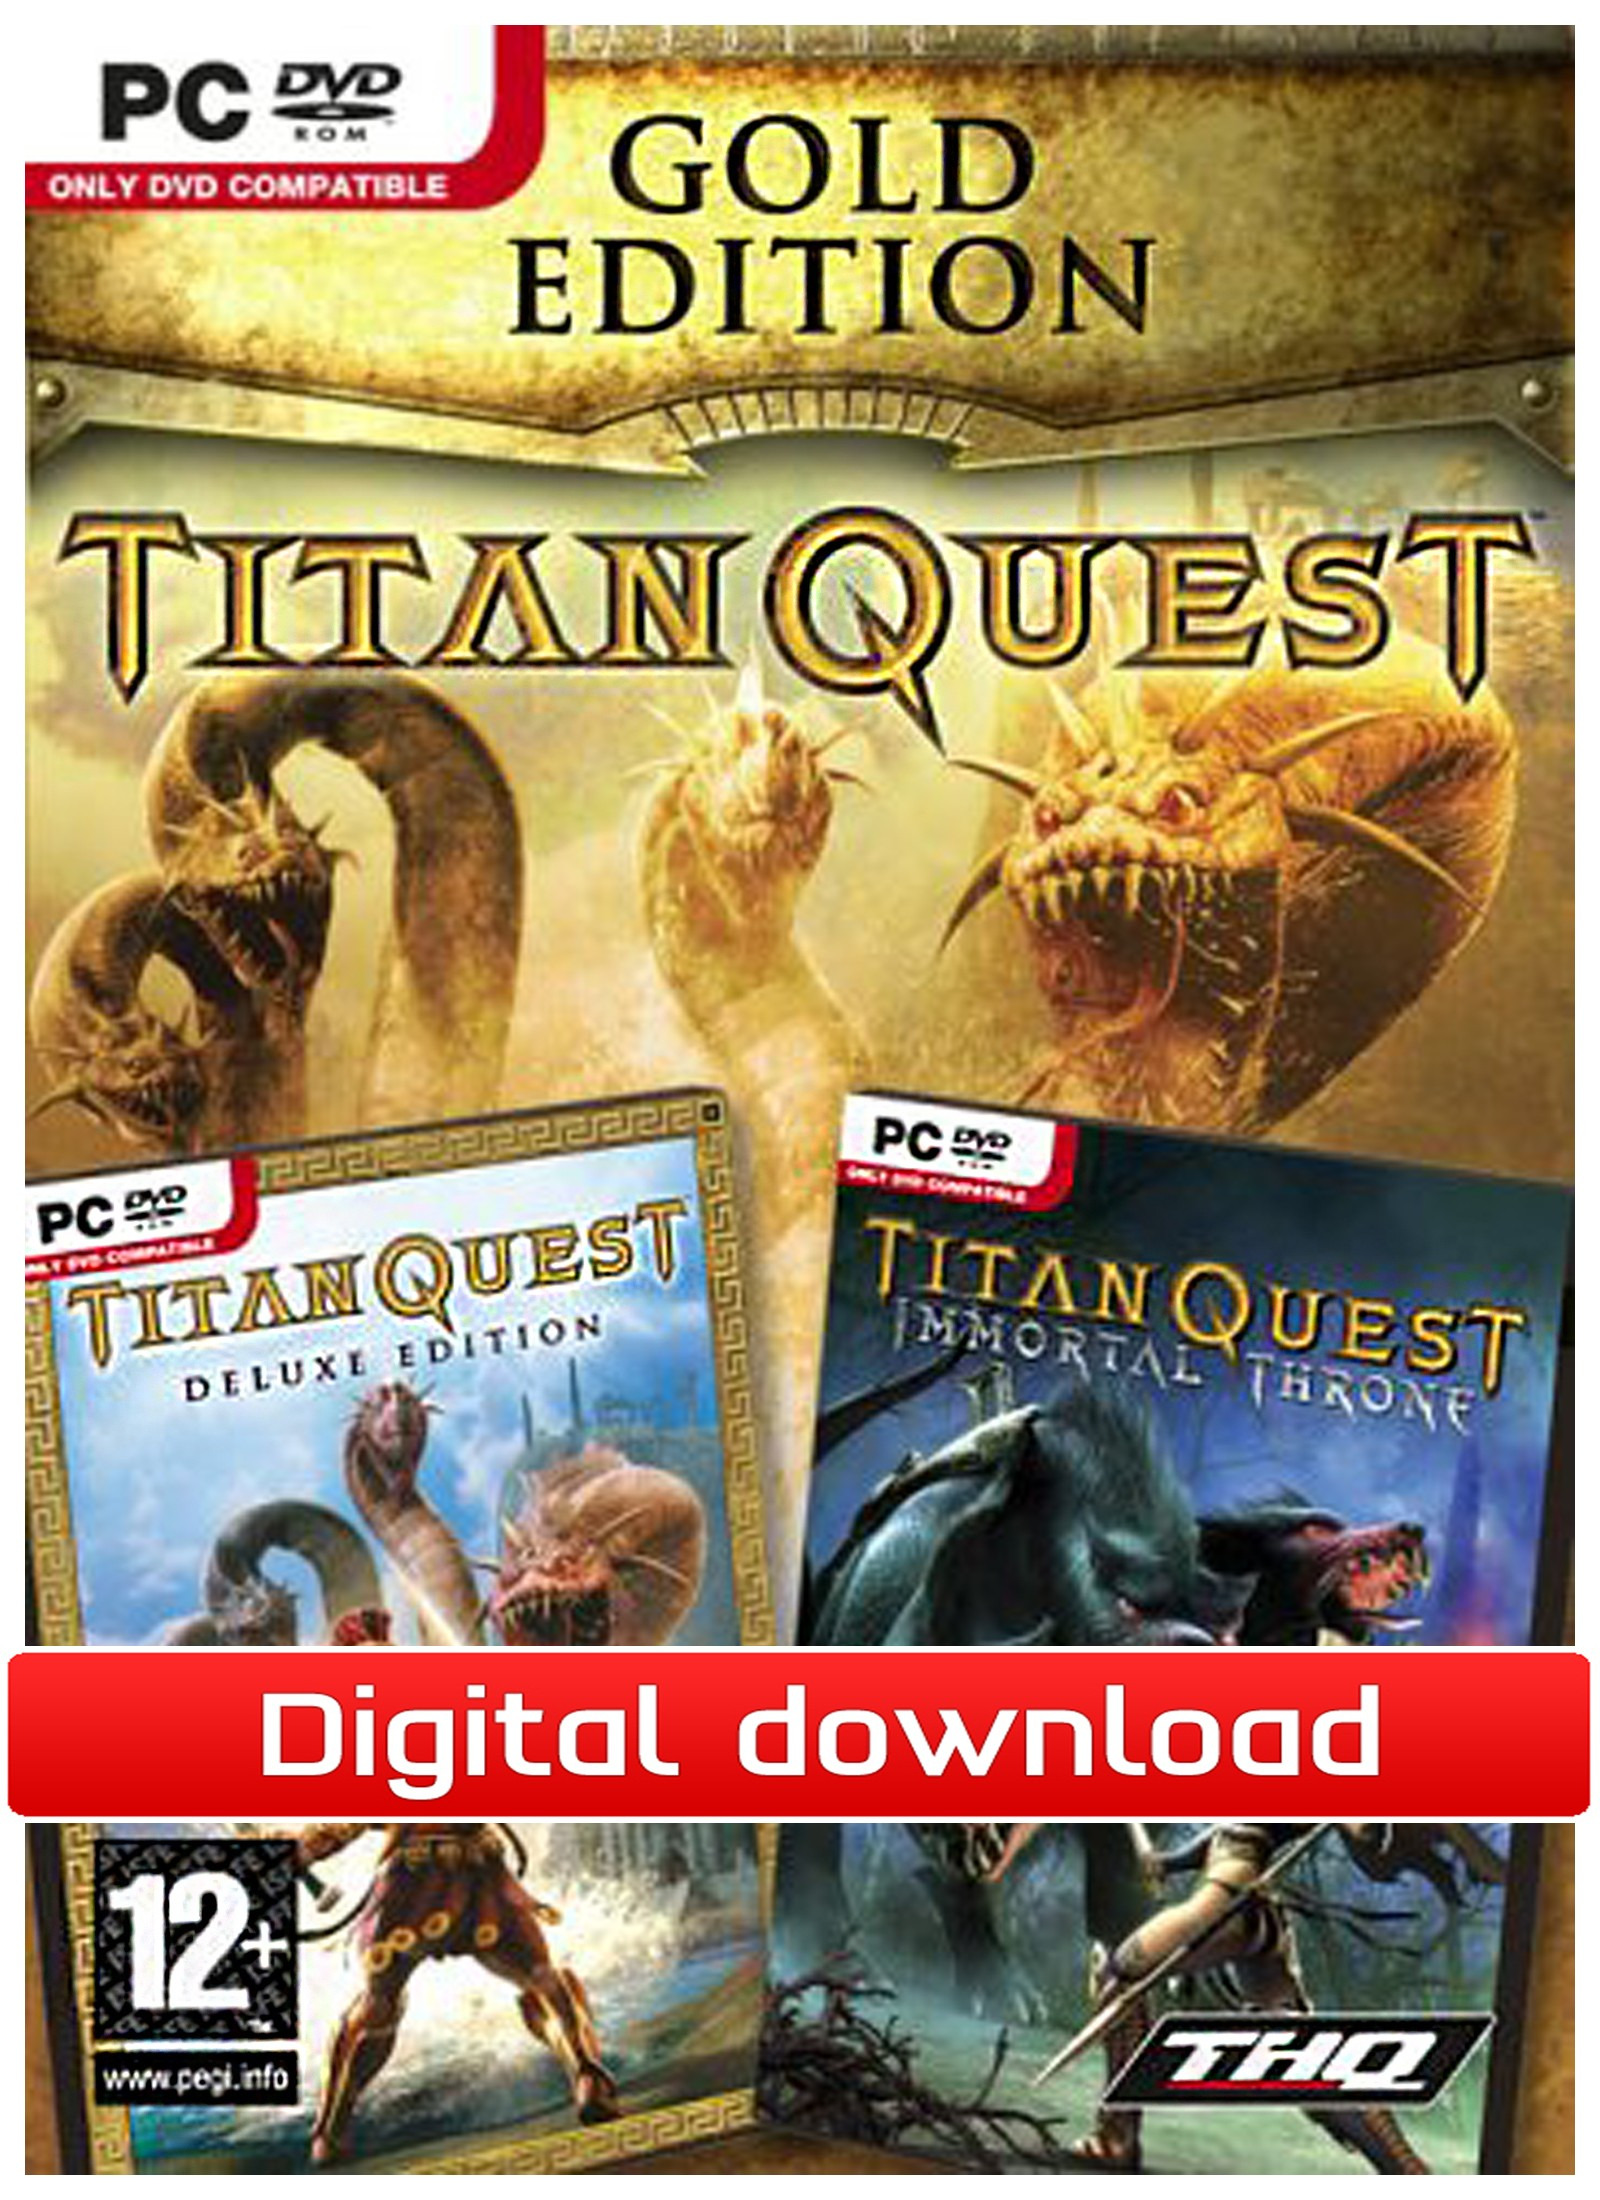 33870 : Titan Quest: Gold Edition (PC nedlastning)